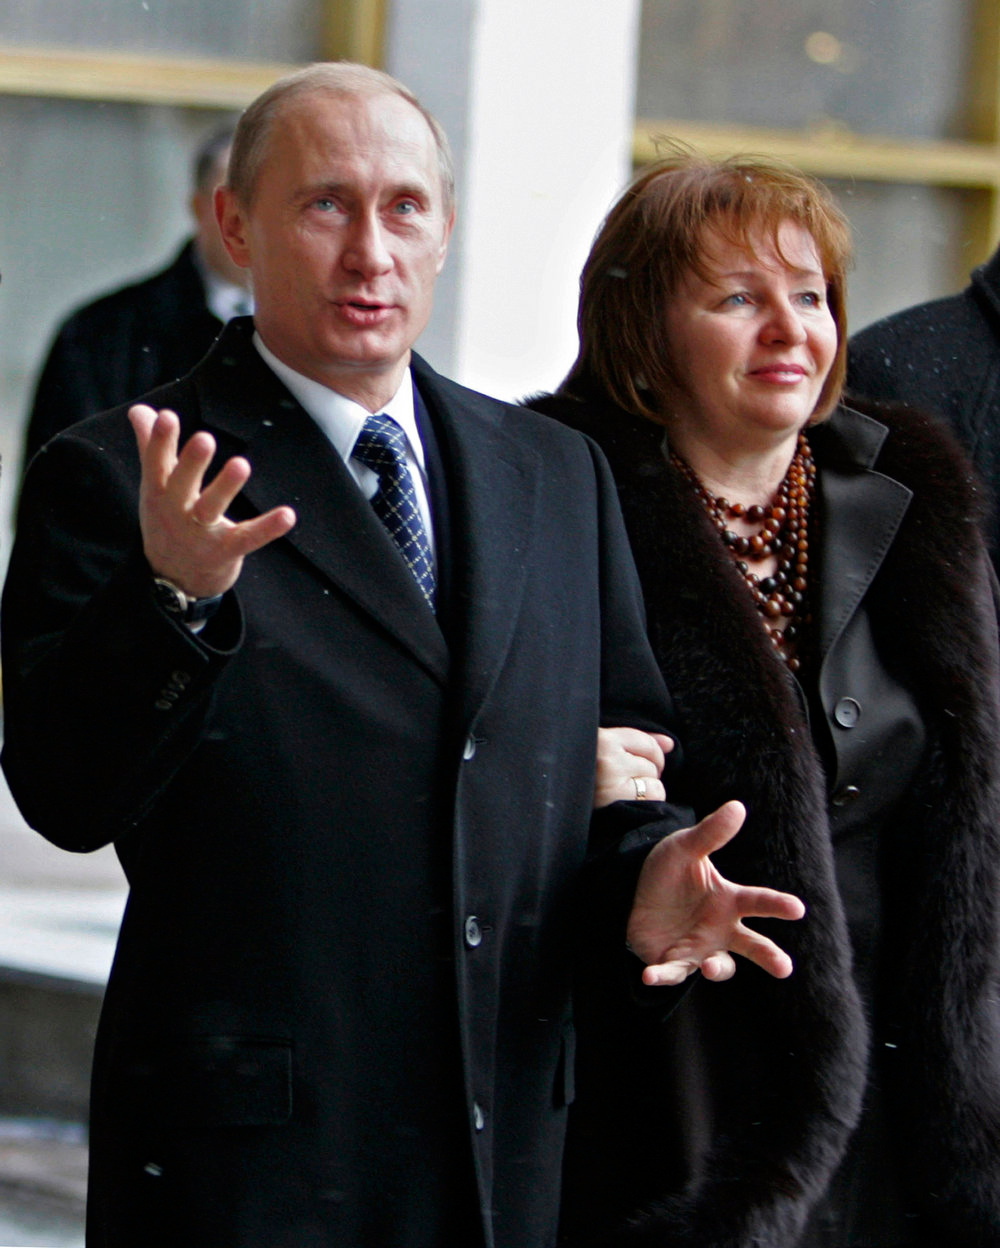 . Russian President Vladimir Putin, left, and his wife Lyudmila, right, stand at a polling station in Moscow, Russia, Sunday, Dec. 2, 2007.  Millions of Russians cast ballots in parliamentary elections Sunday, in a tense vote that followed a campaign marked by intimidation, manipulation and arrests designed to ensure a major victory for President Vladimir Putin\'s party. (AP Photo/RIA-Novosti, Dmitry Astakhov, Presidential Press Service)